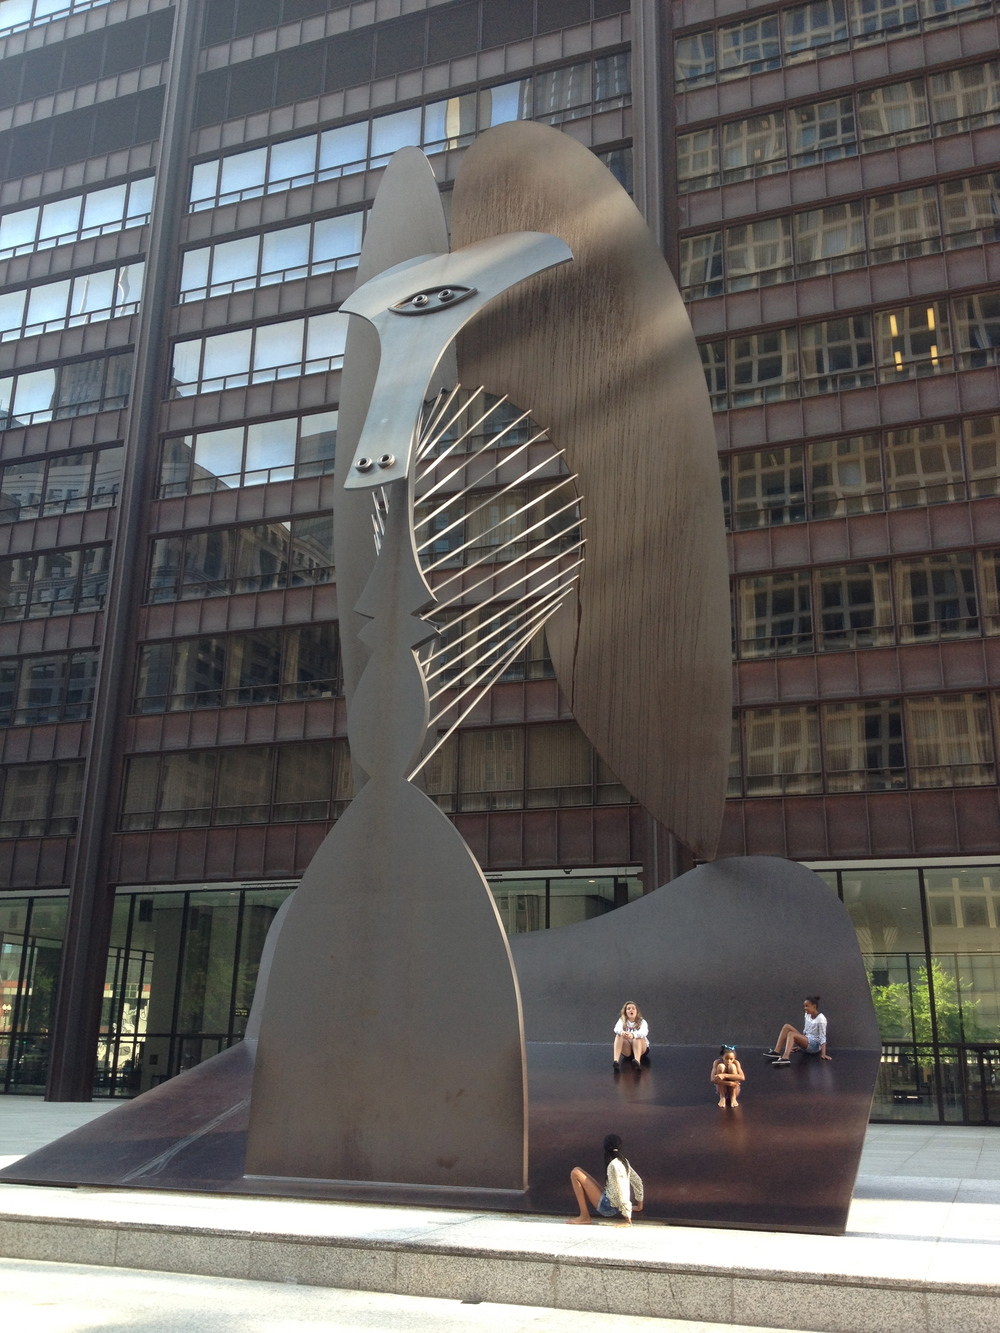 A few blocks away from Millennium Park are several signature public artworks (Picasso) that sit on plaza's in front of office buildings.  While there were highly popular when installed over 30 years ago, today they are just part of the urban landscape.  Is this the fate of all public art?